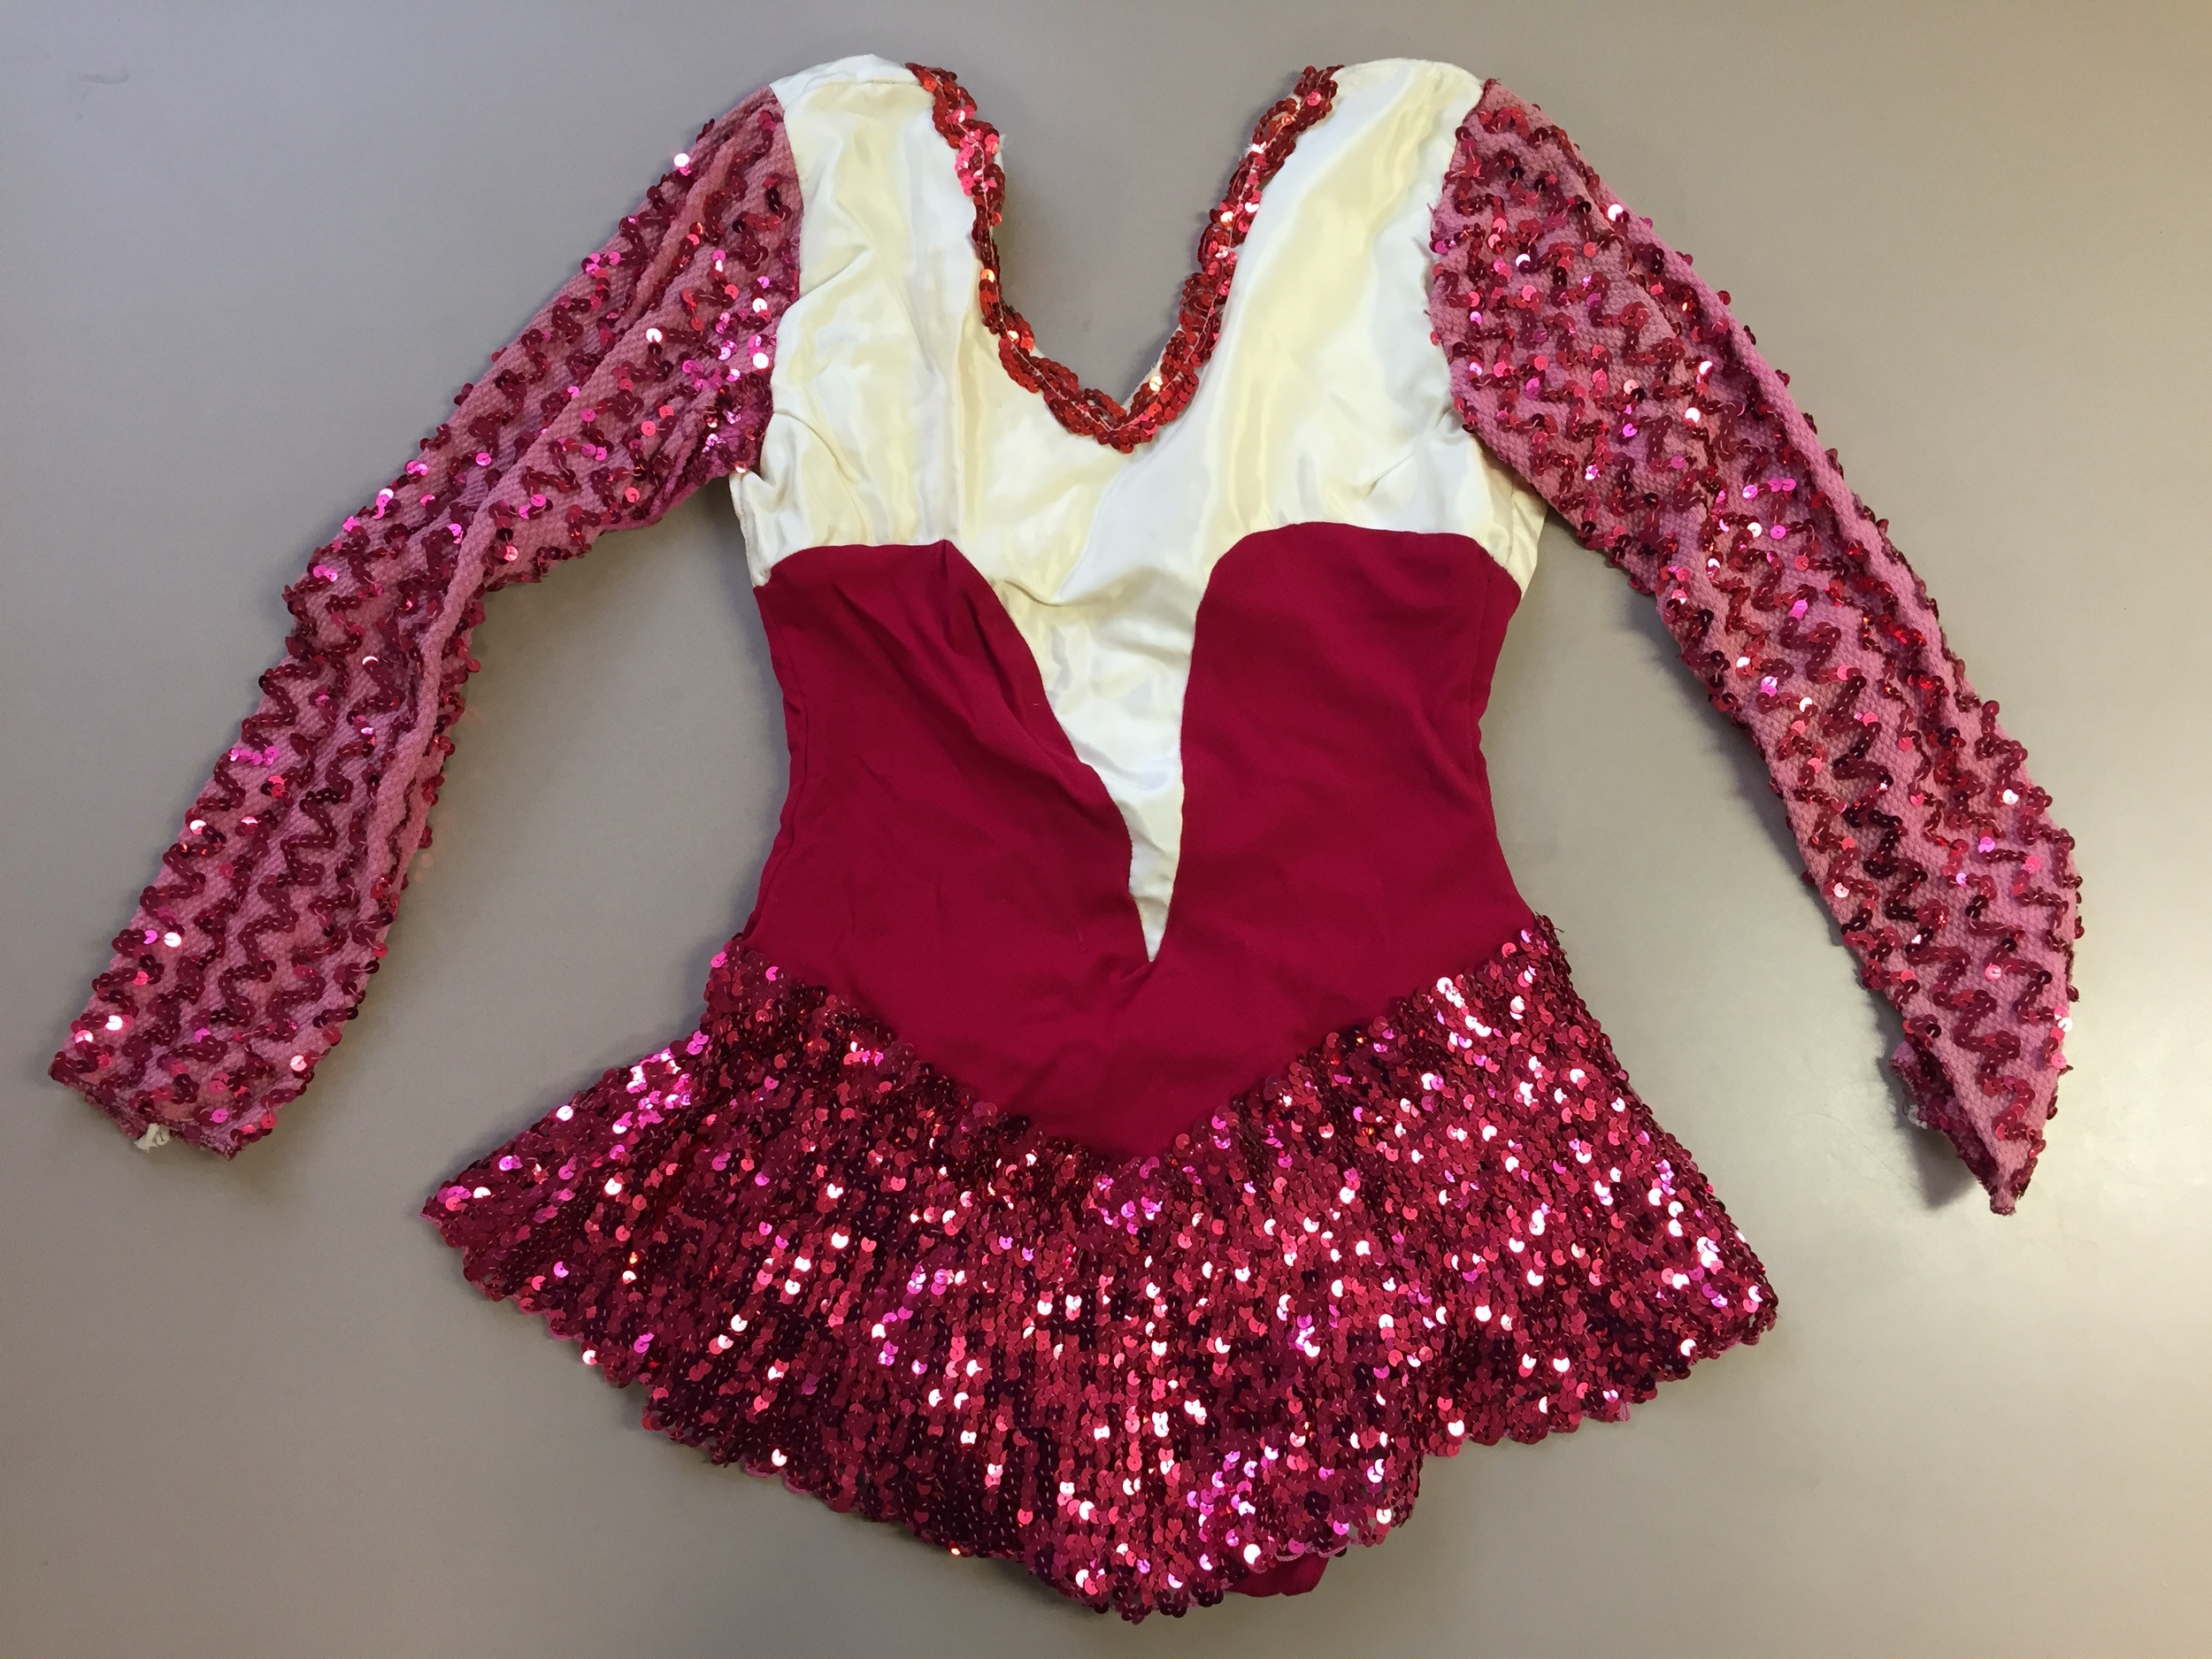 Sparkling white and magenta uniform, late 1970's, from Baltimore, MD. Donated to the Moorland-Spingarn Collection at Howard University.